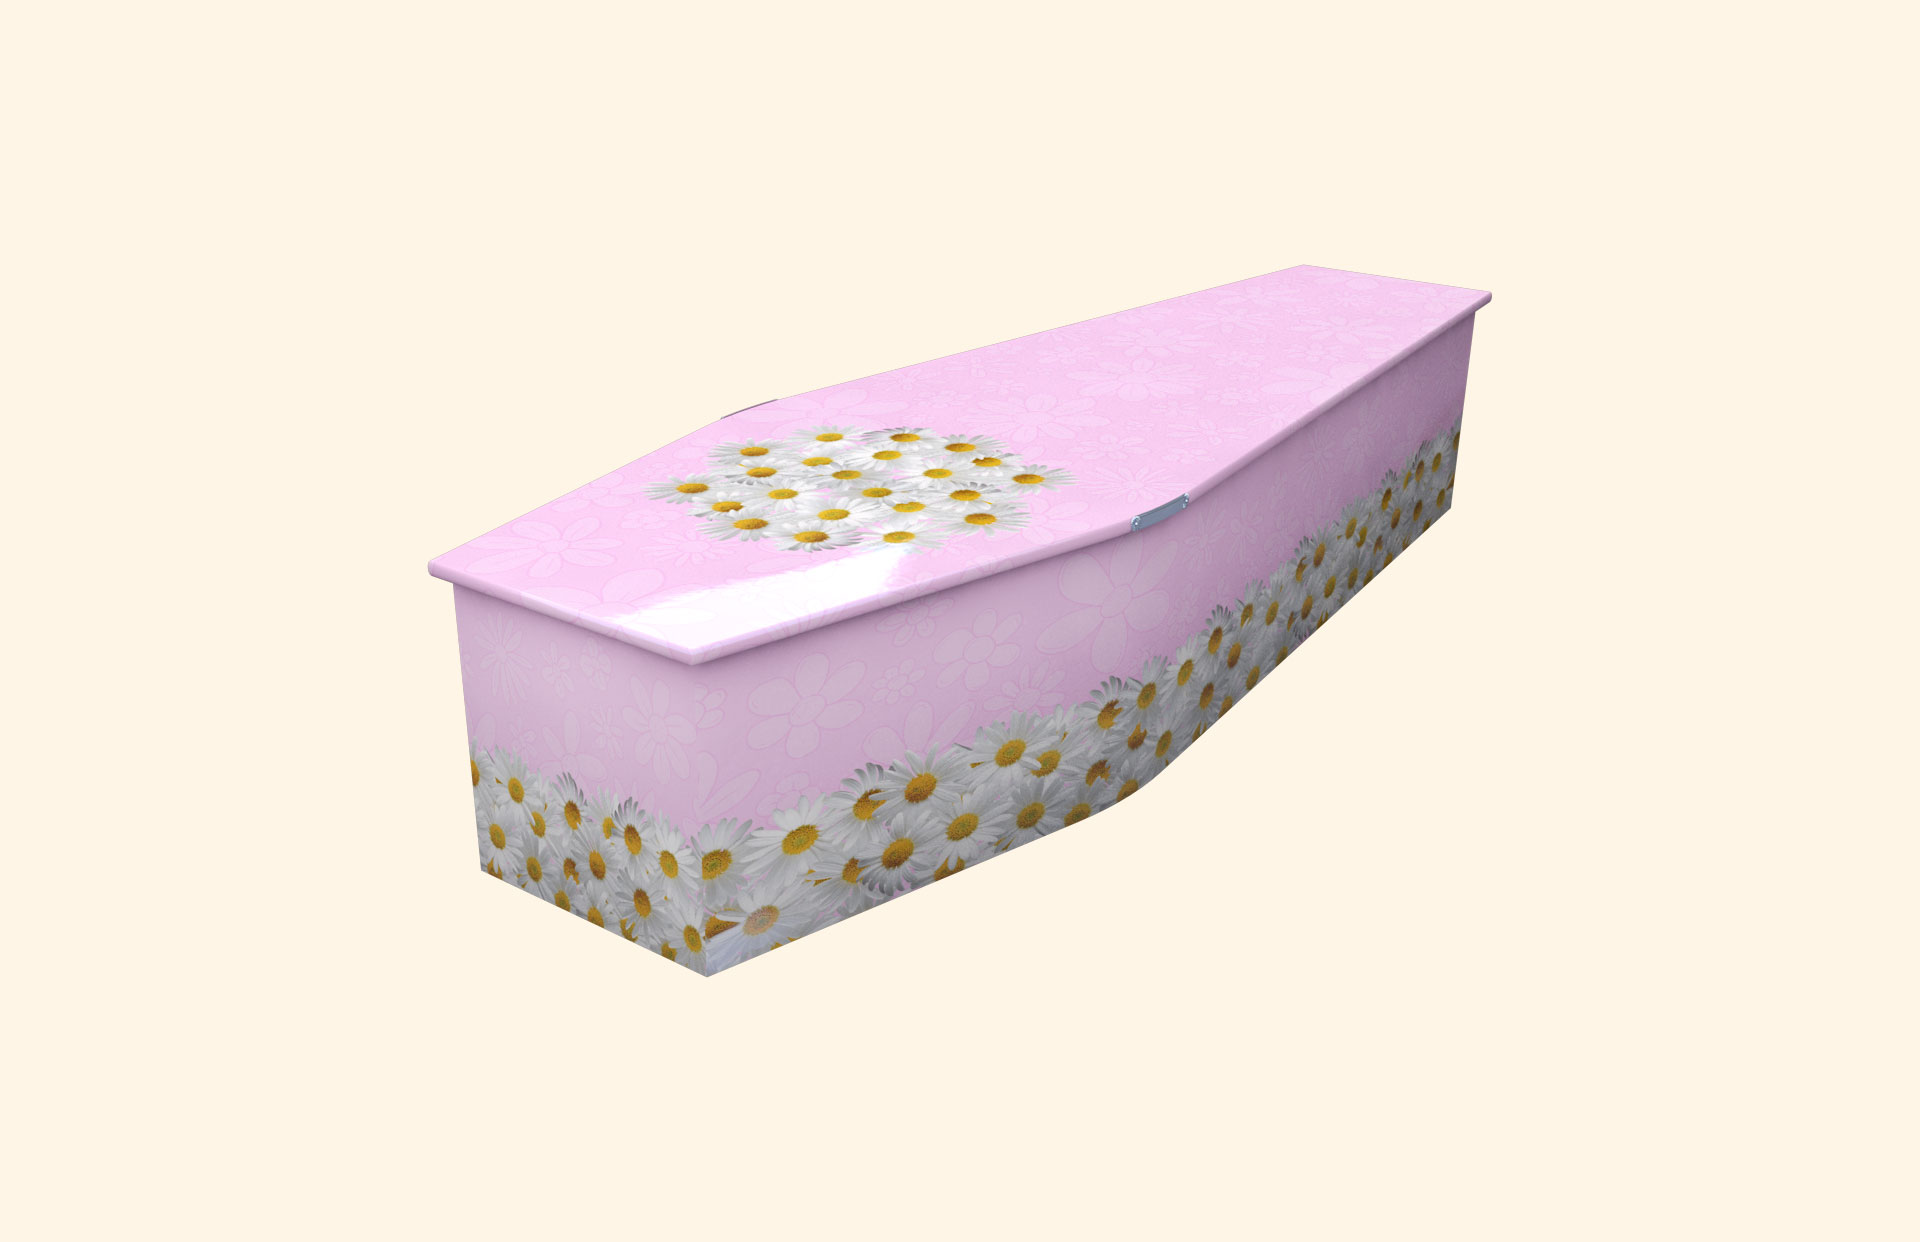 Bed of Daisies pink child coffin